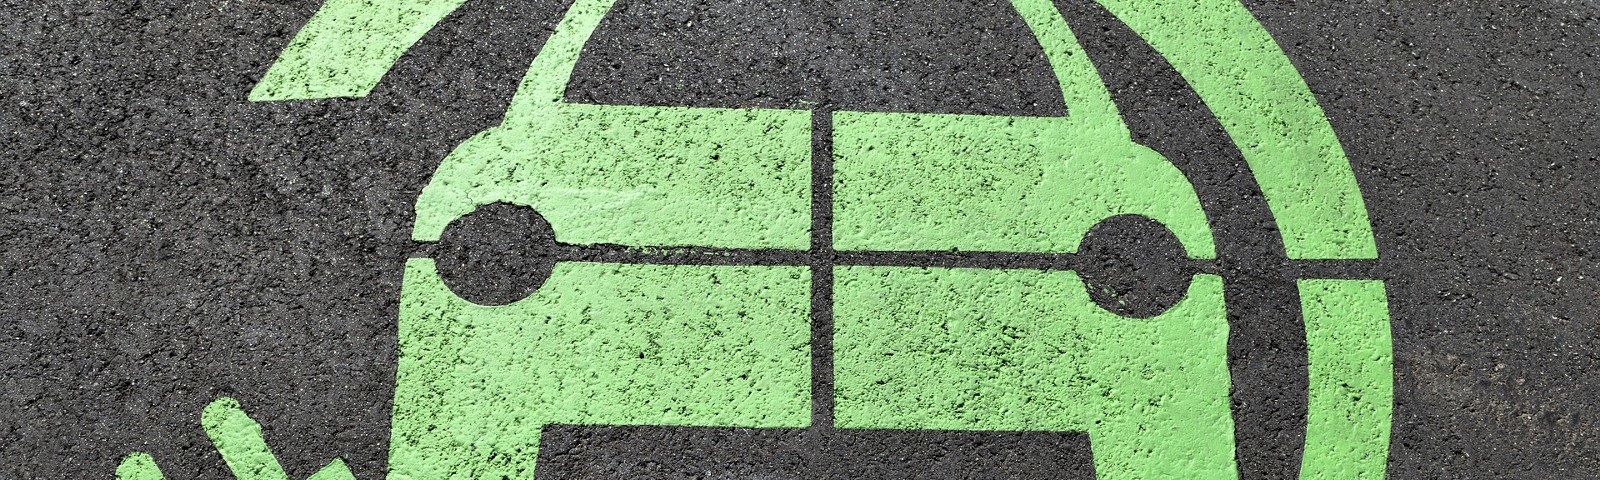 A green electric vehicle charging sign on a parking space